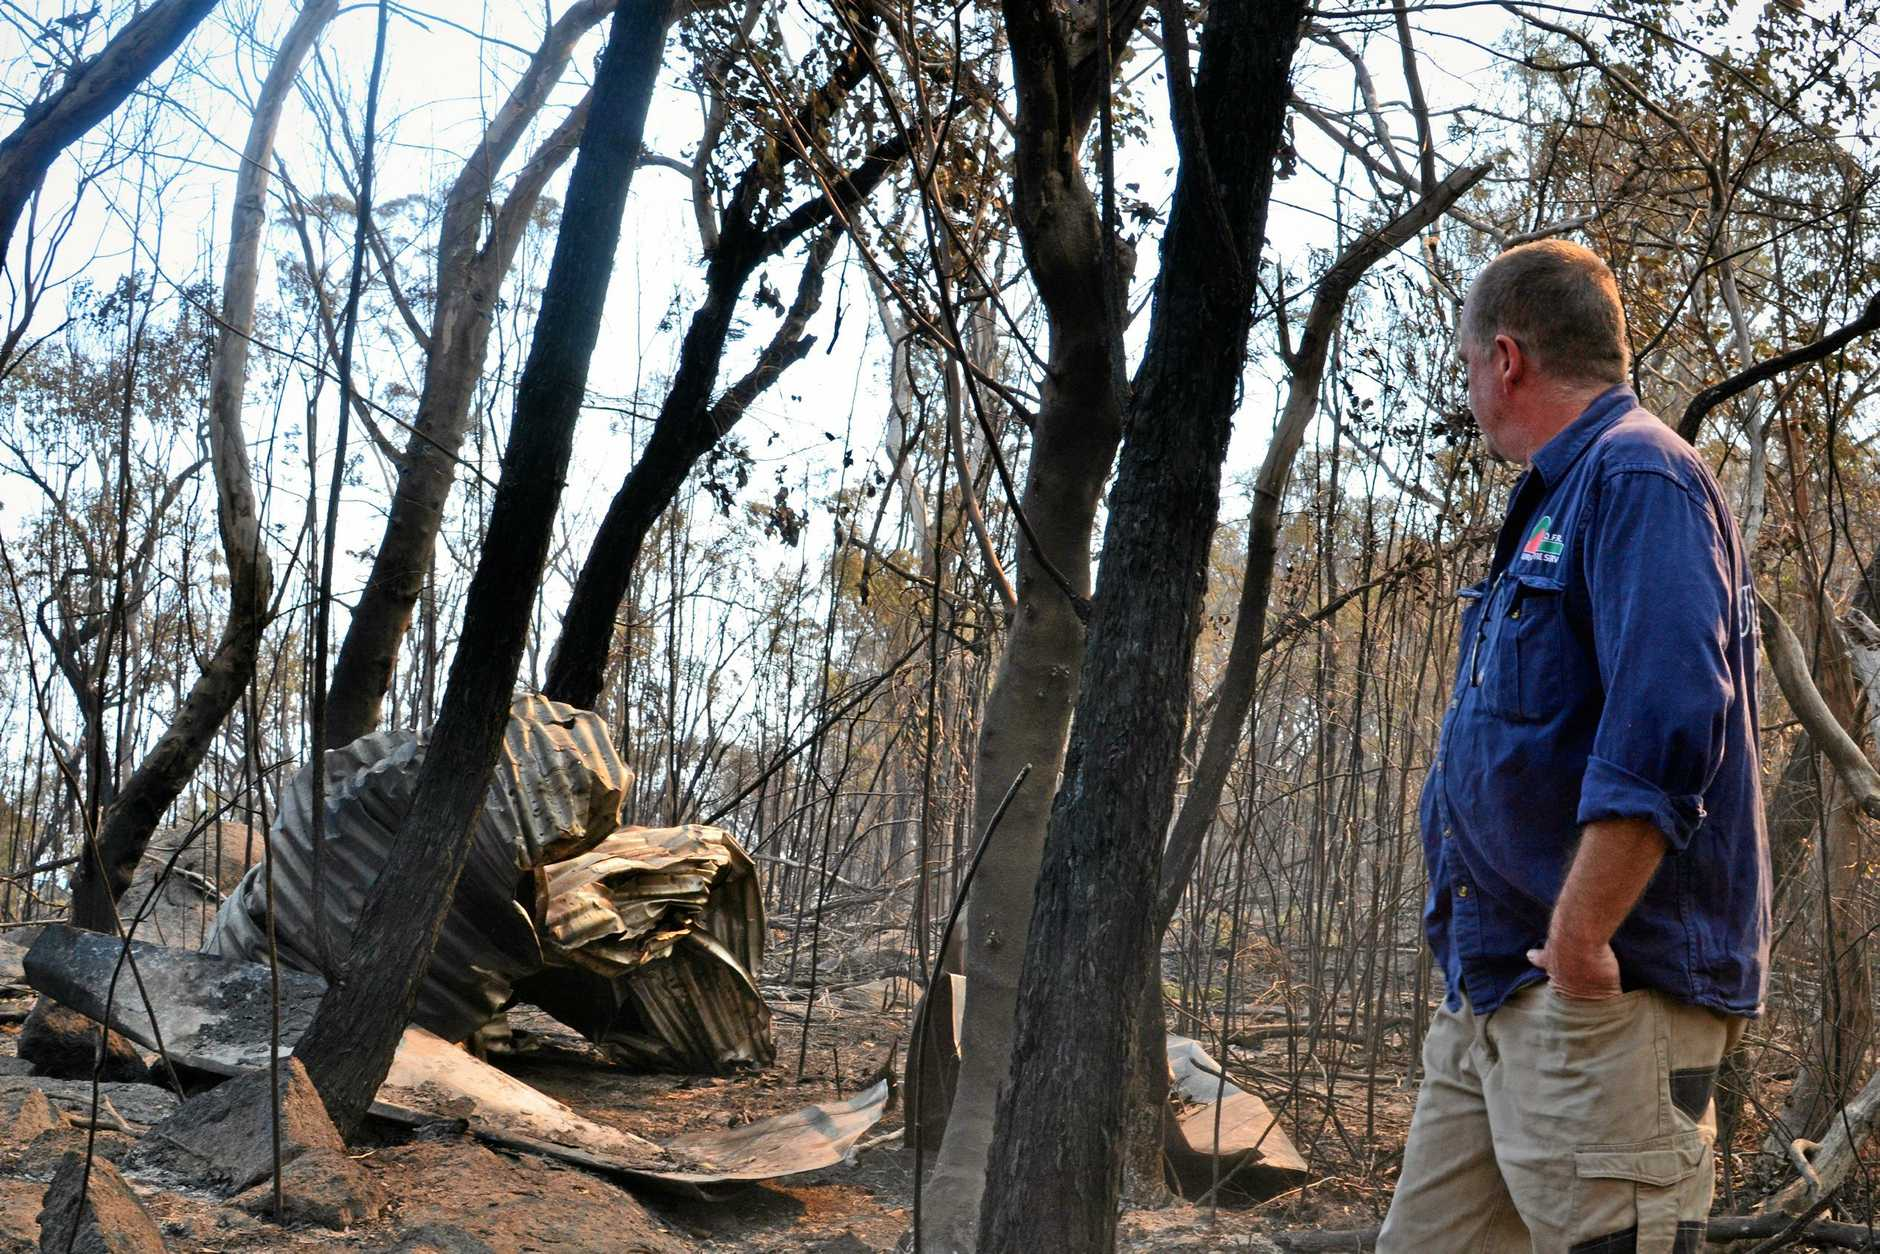 TOTAL DESTRUCTION: Graham Parker says fires are to be expected but caution could avoid further destruction.